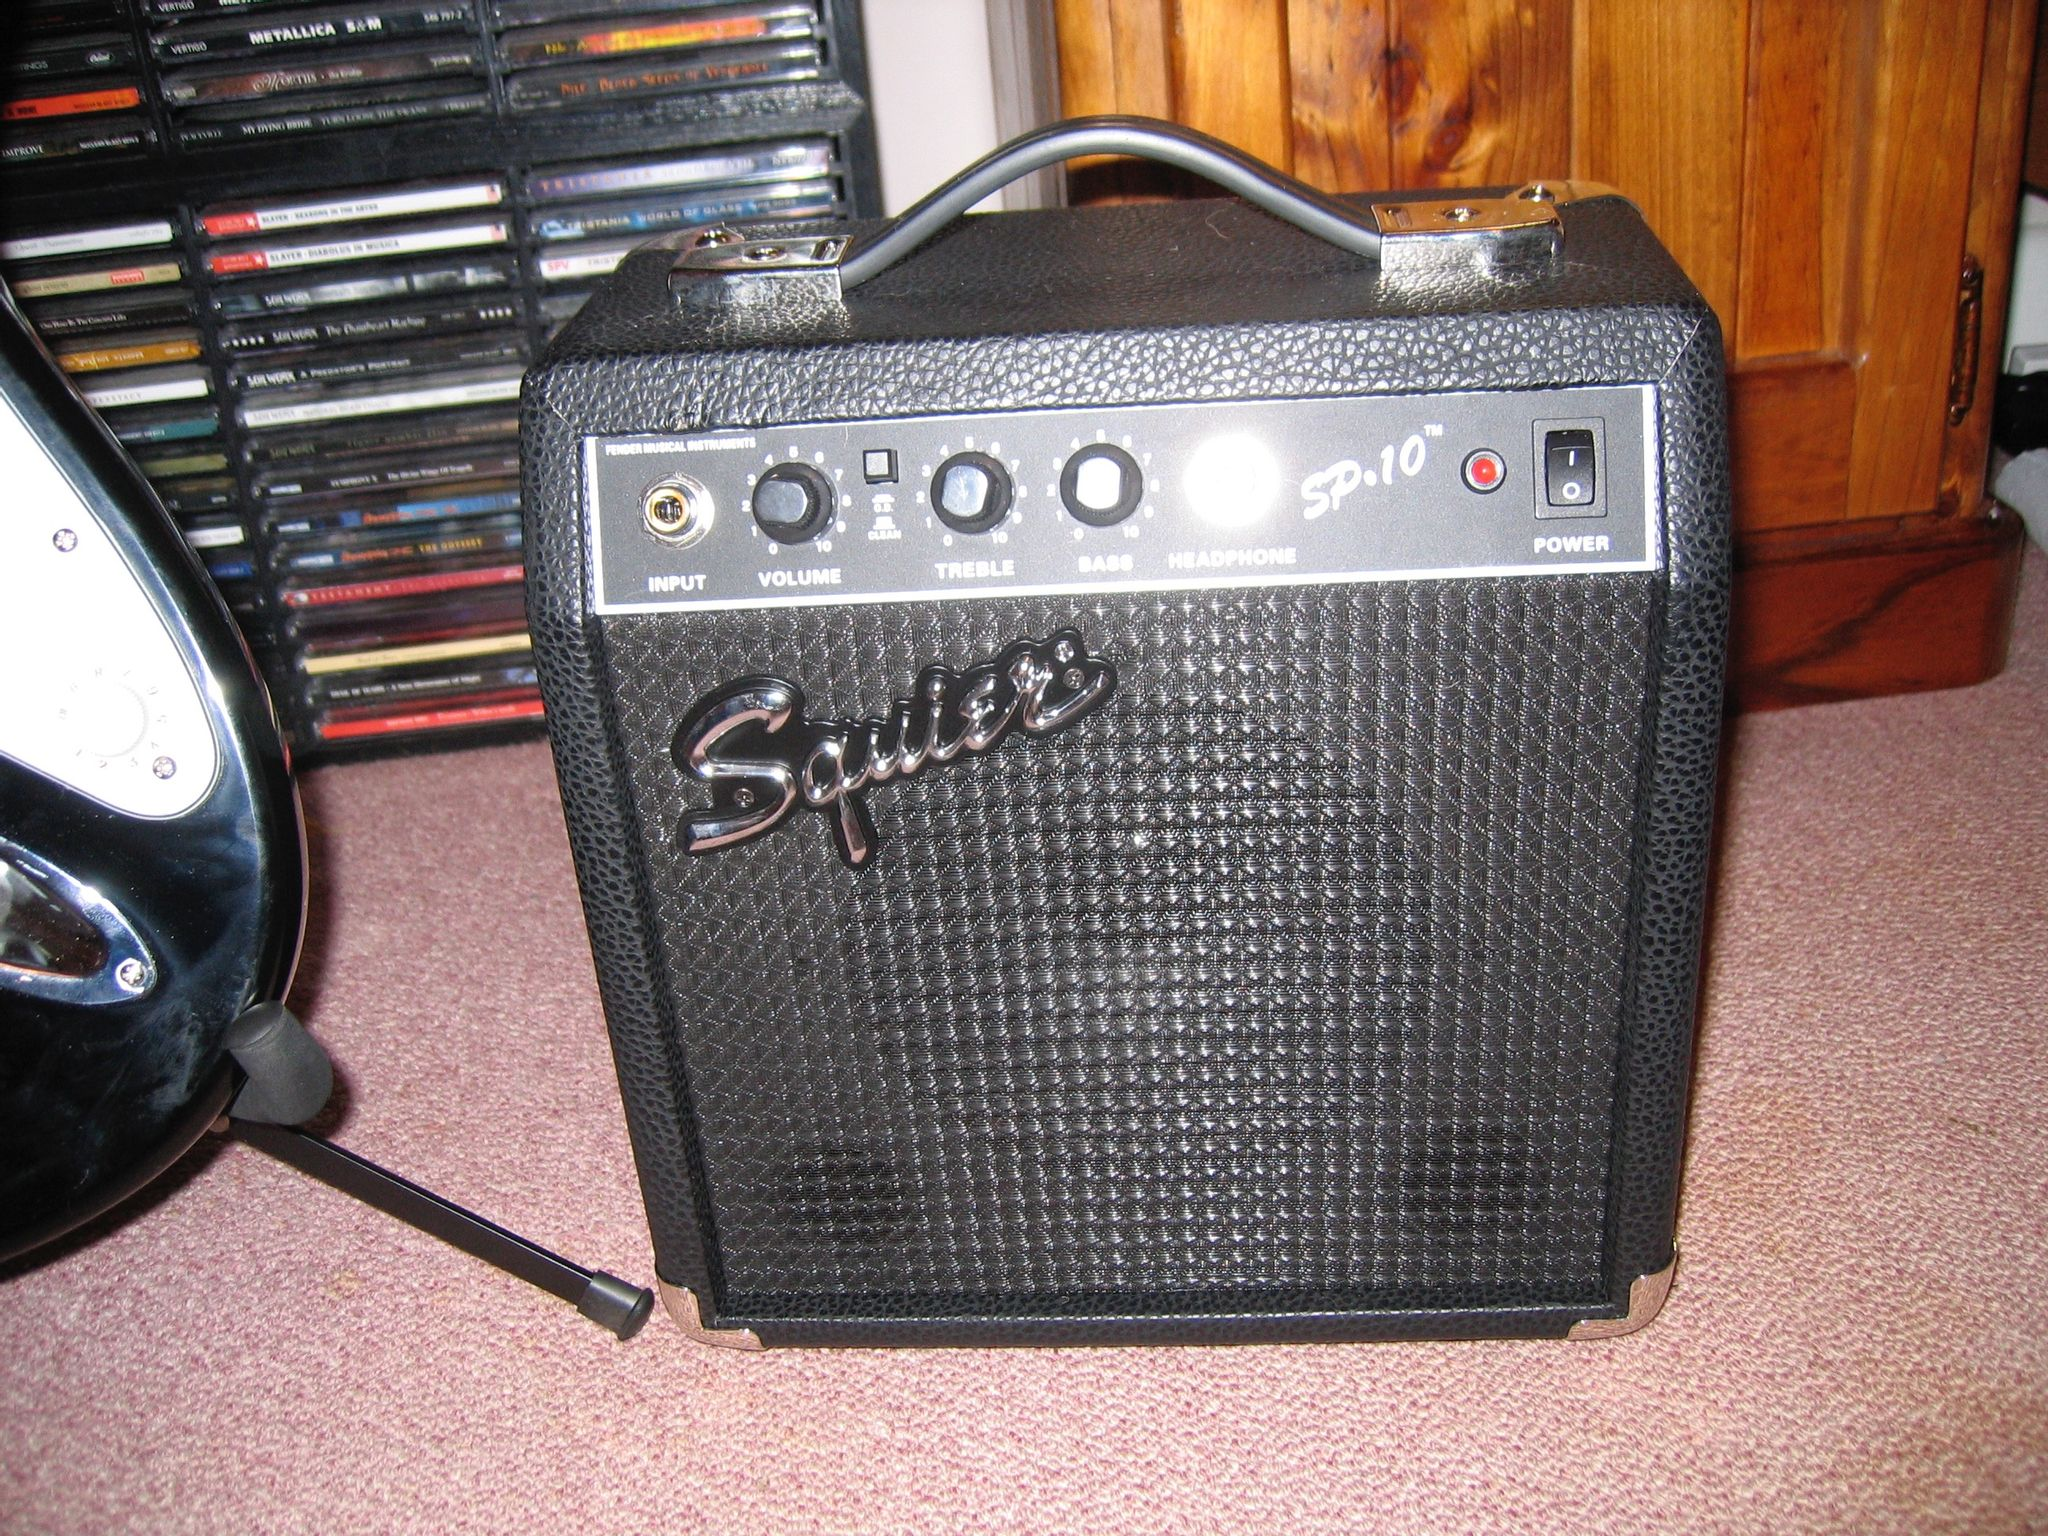 A closeup of a black electric amp sitting on the floor.